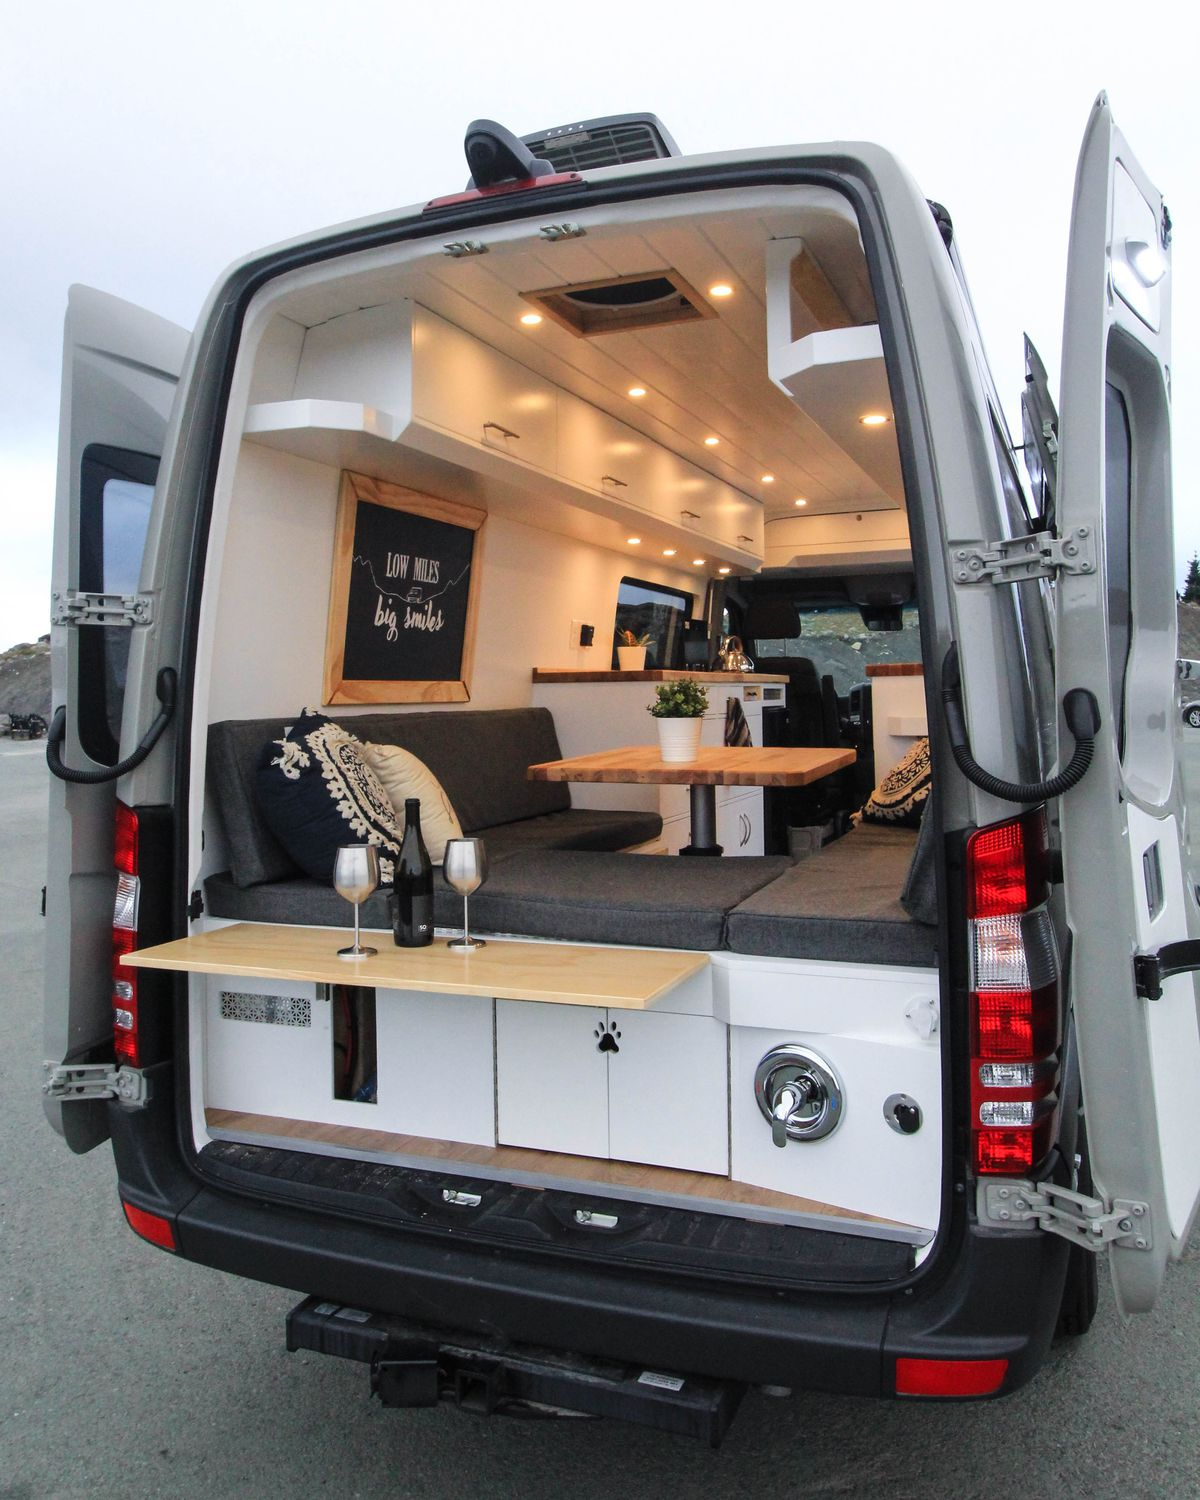 Converted Camper Van Is A Cozy Home On Wheels Curbed